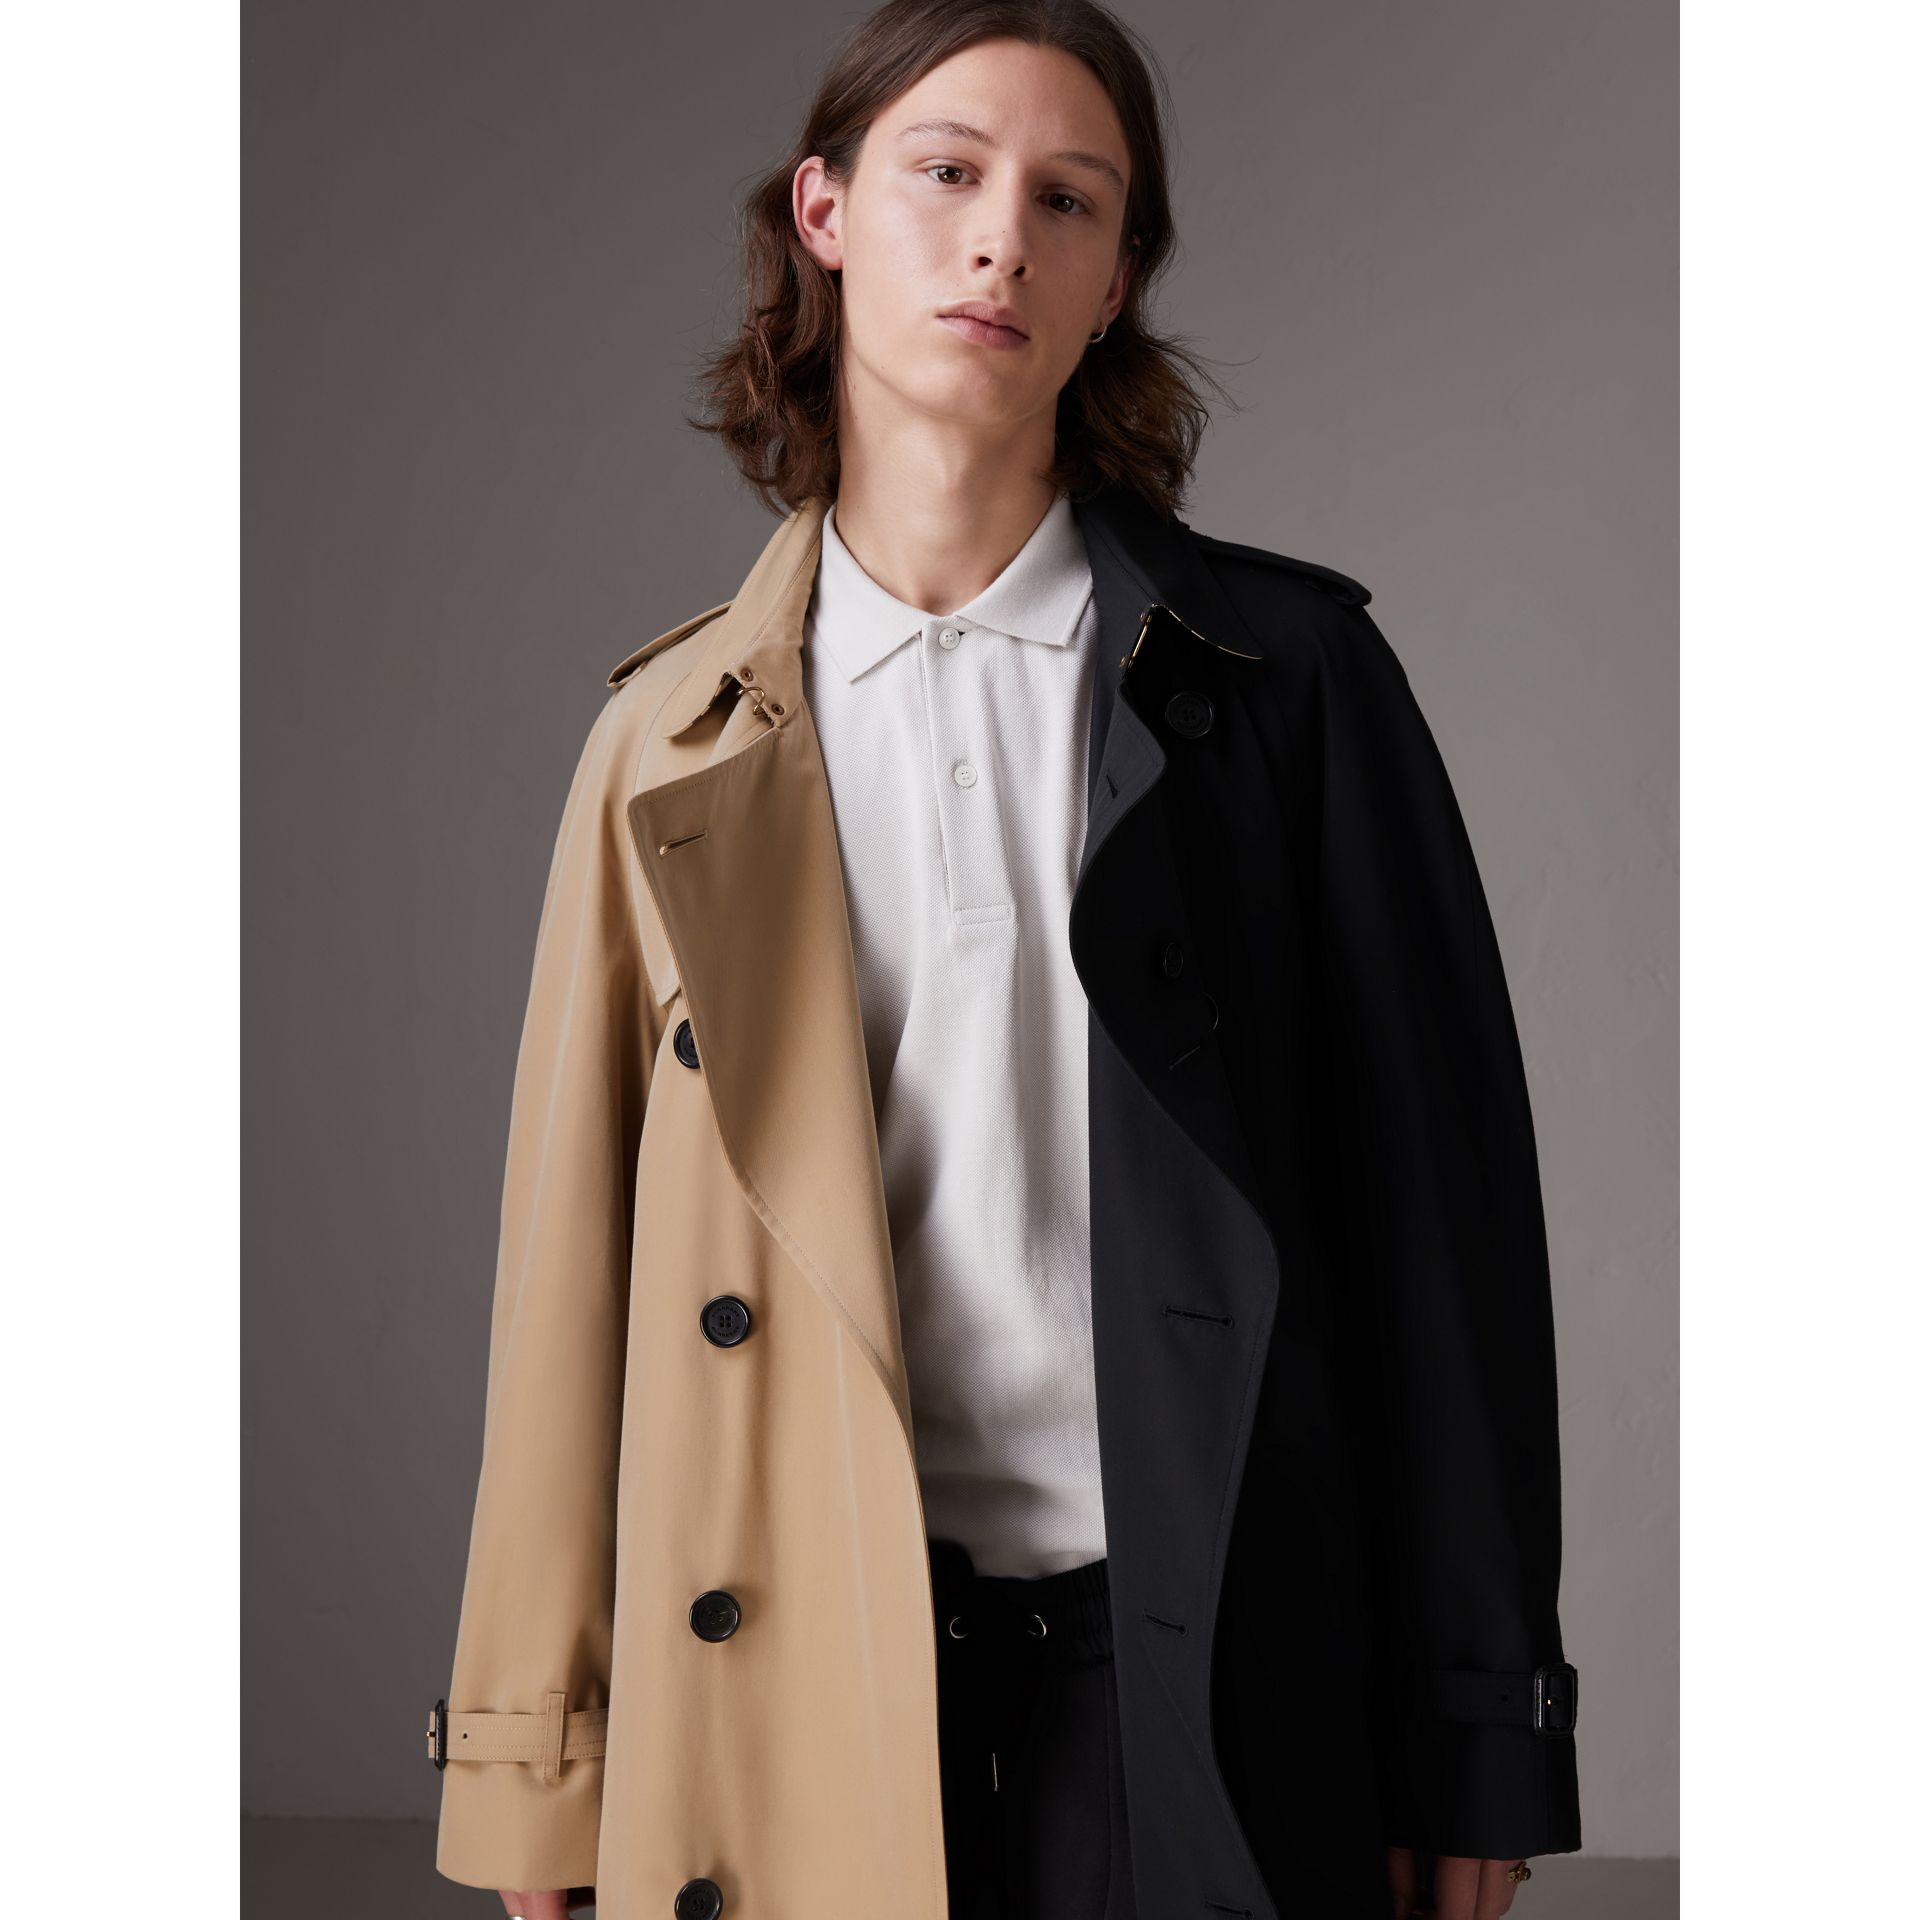 Gosha x Burberry Two-tone Trench Coat in Honey | Burberry - gallery image 7